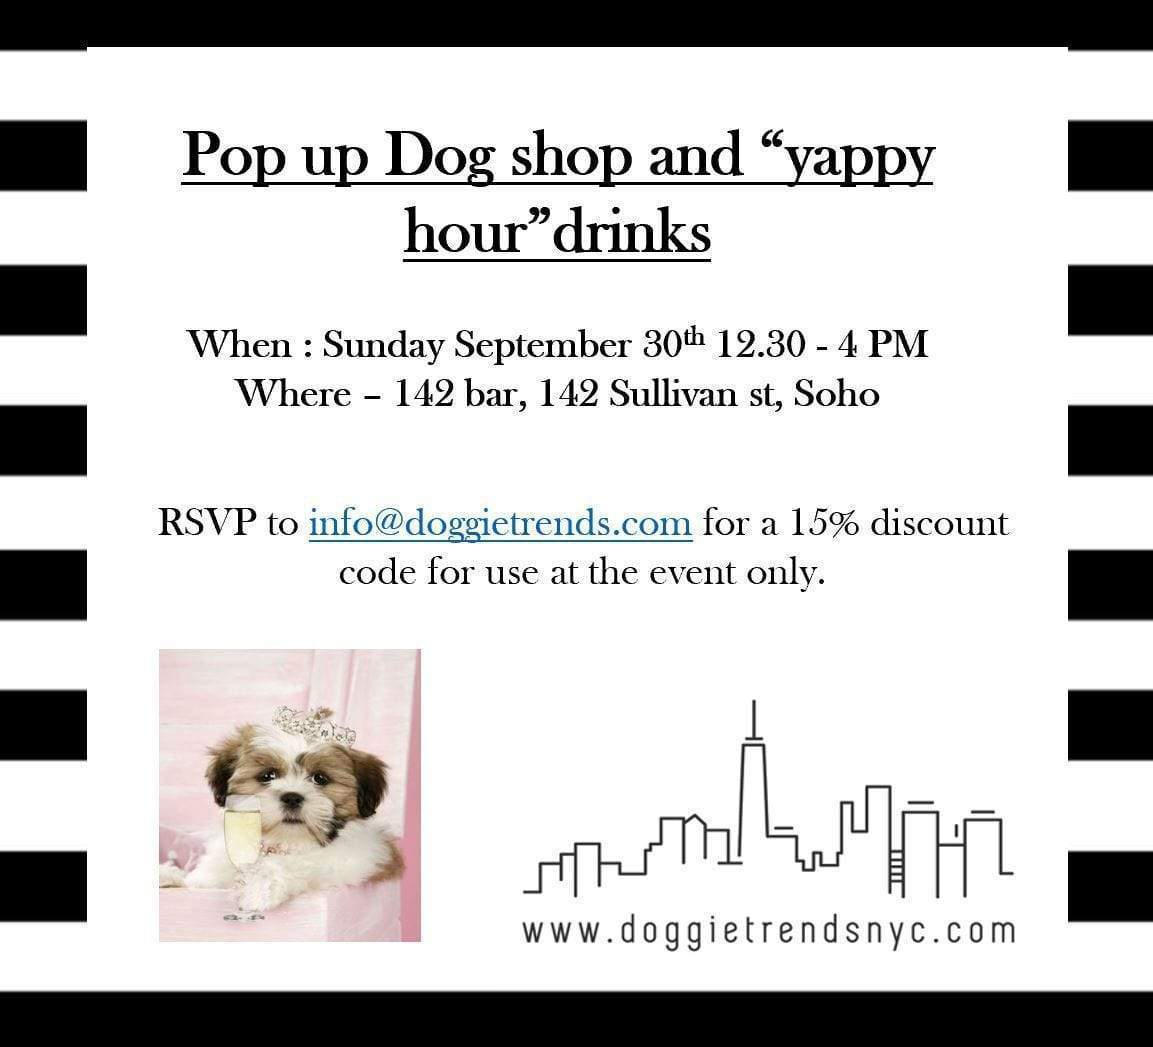 Pop Up Dog Accessories Shop in Soho, NYC.